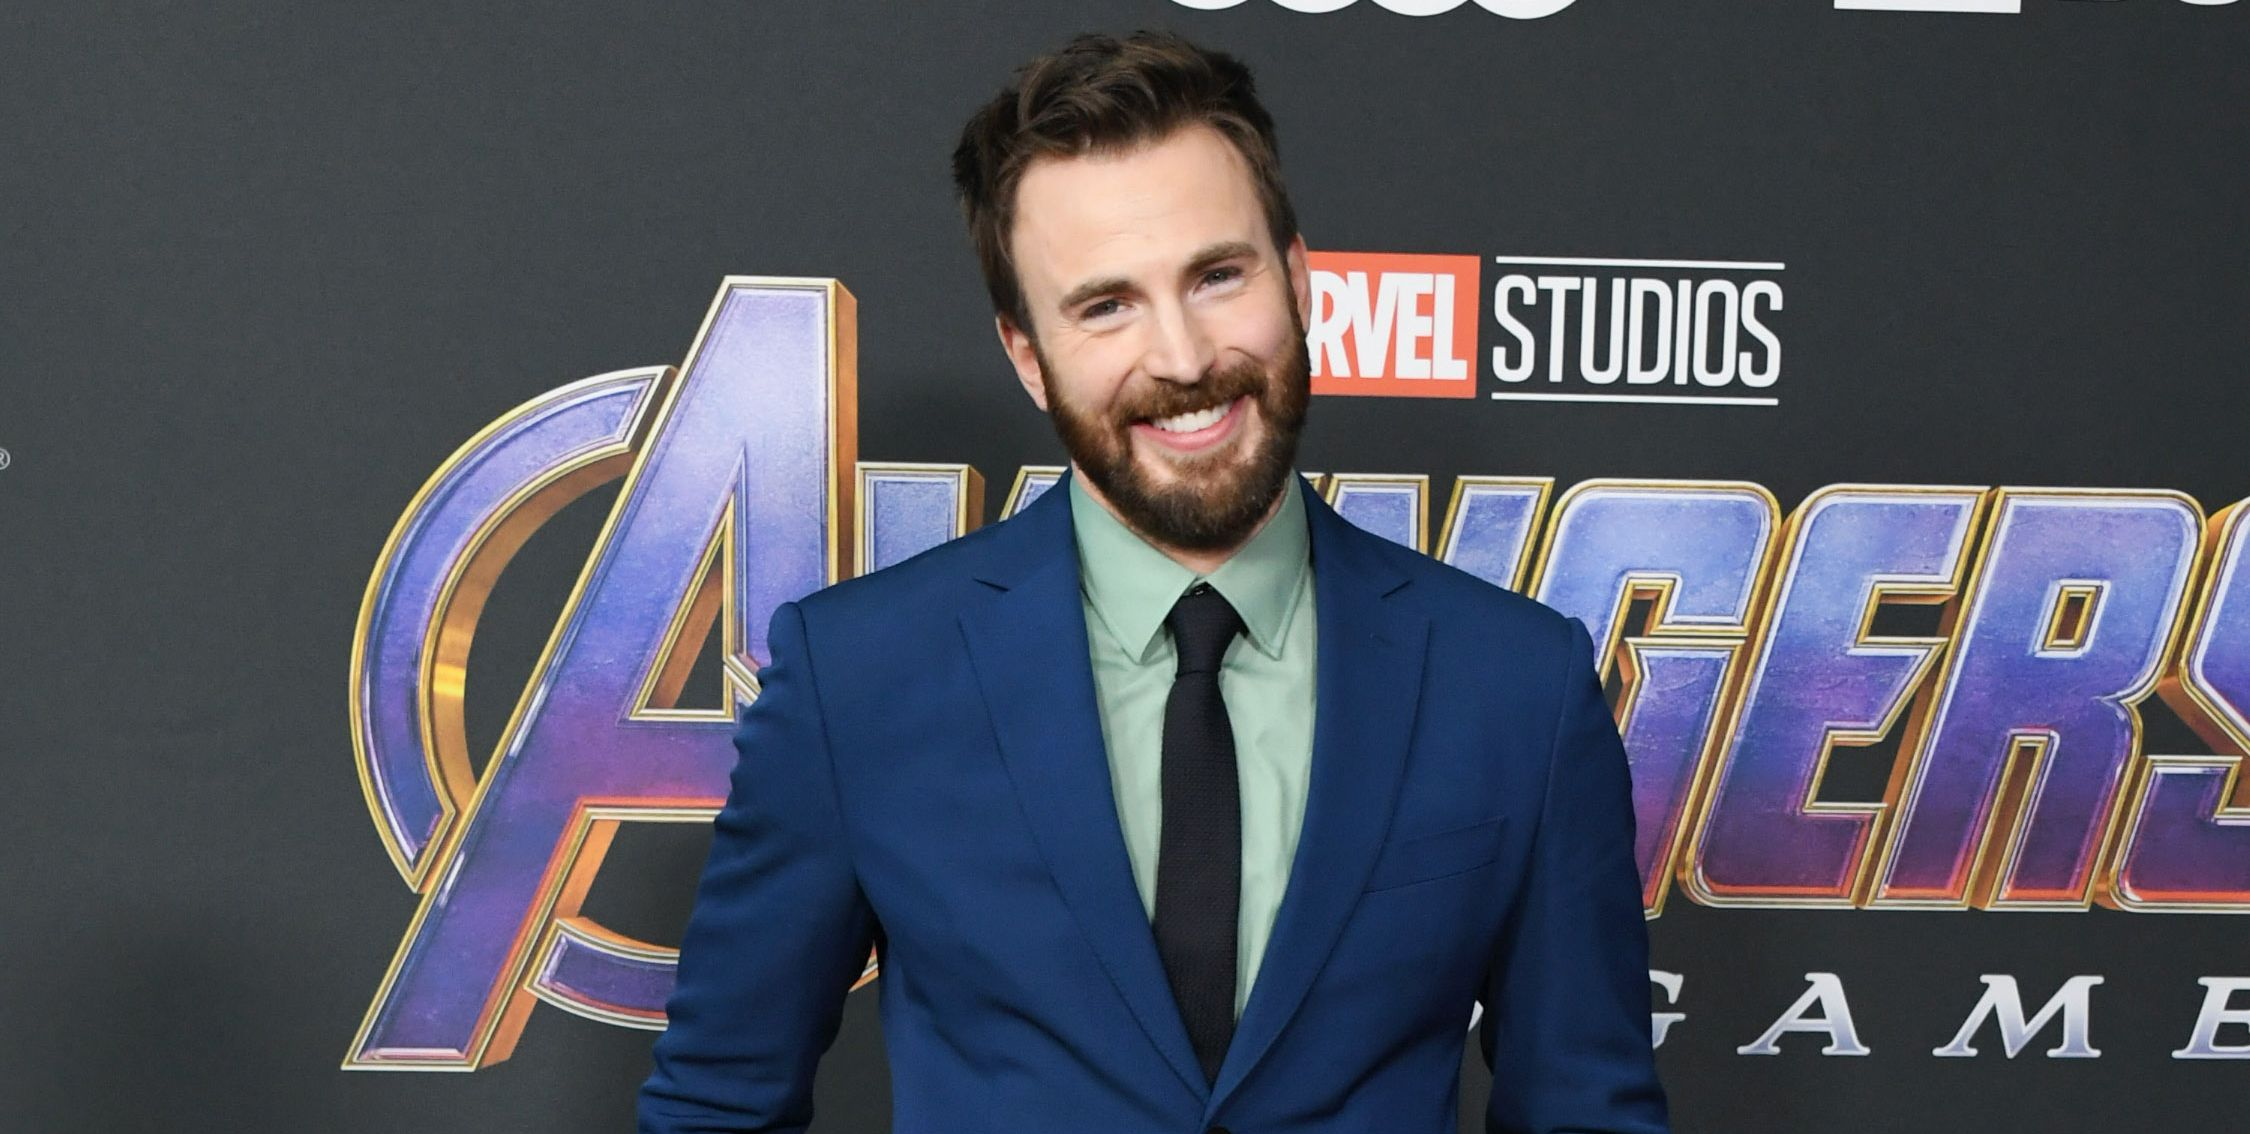 Chris Evans, Avengers: Endgame World premiere